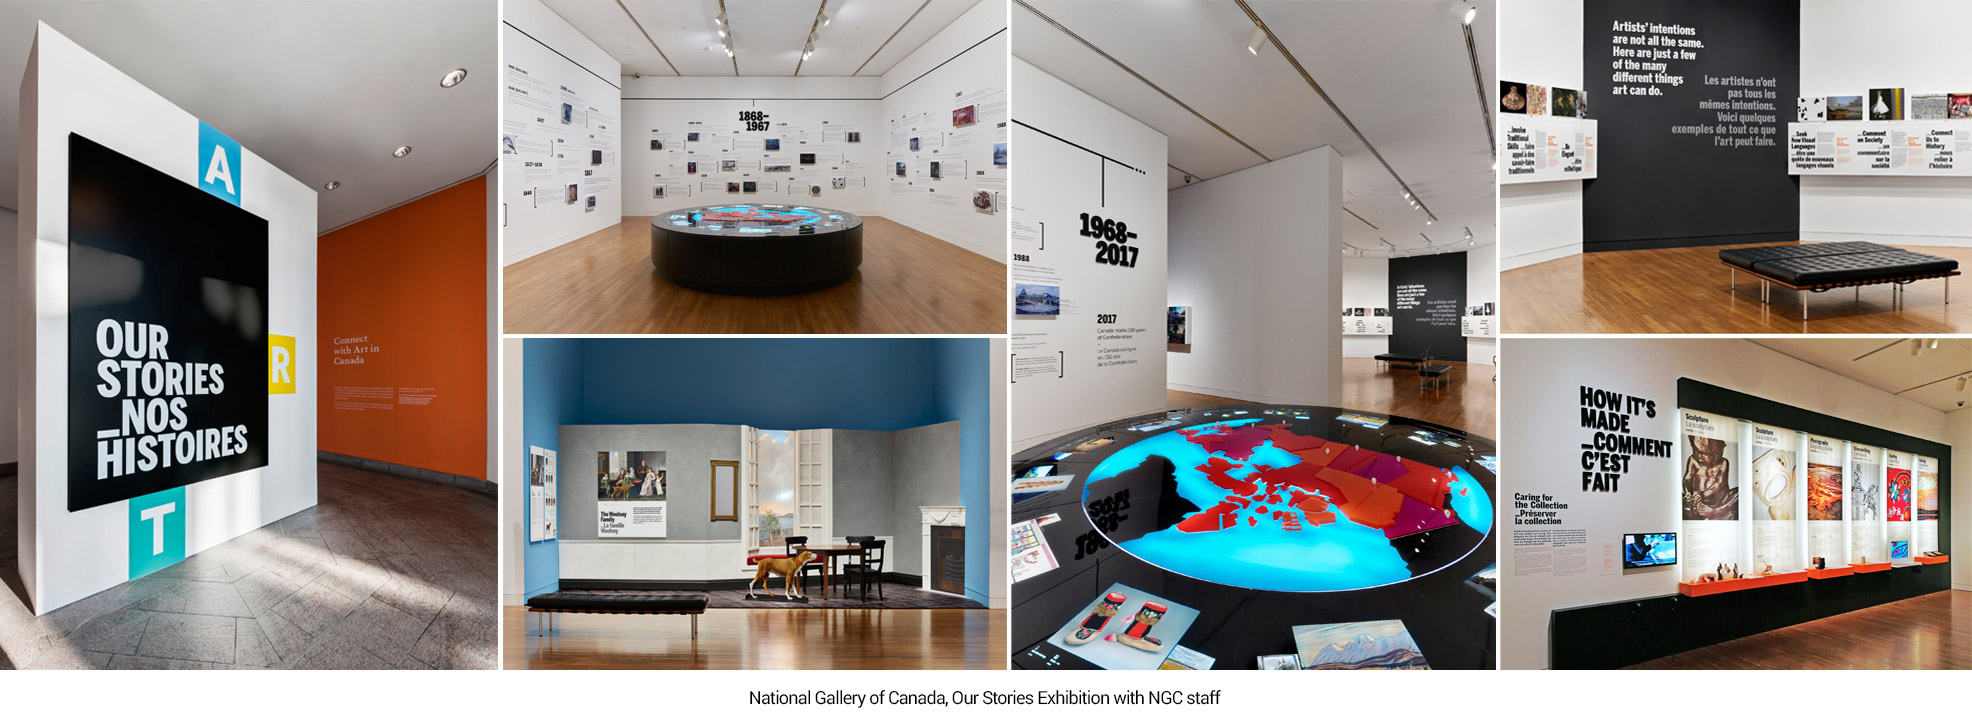 National Gallery of Canada, Our Stories Exhibition